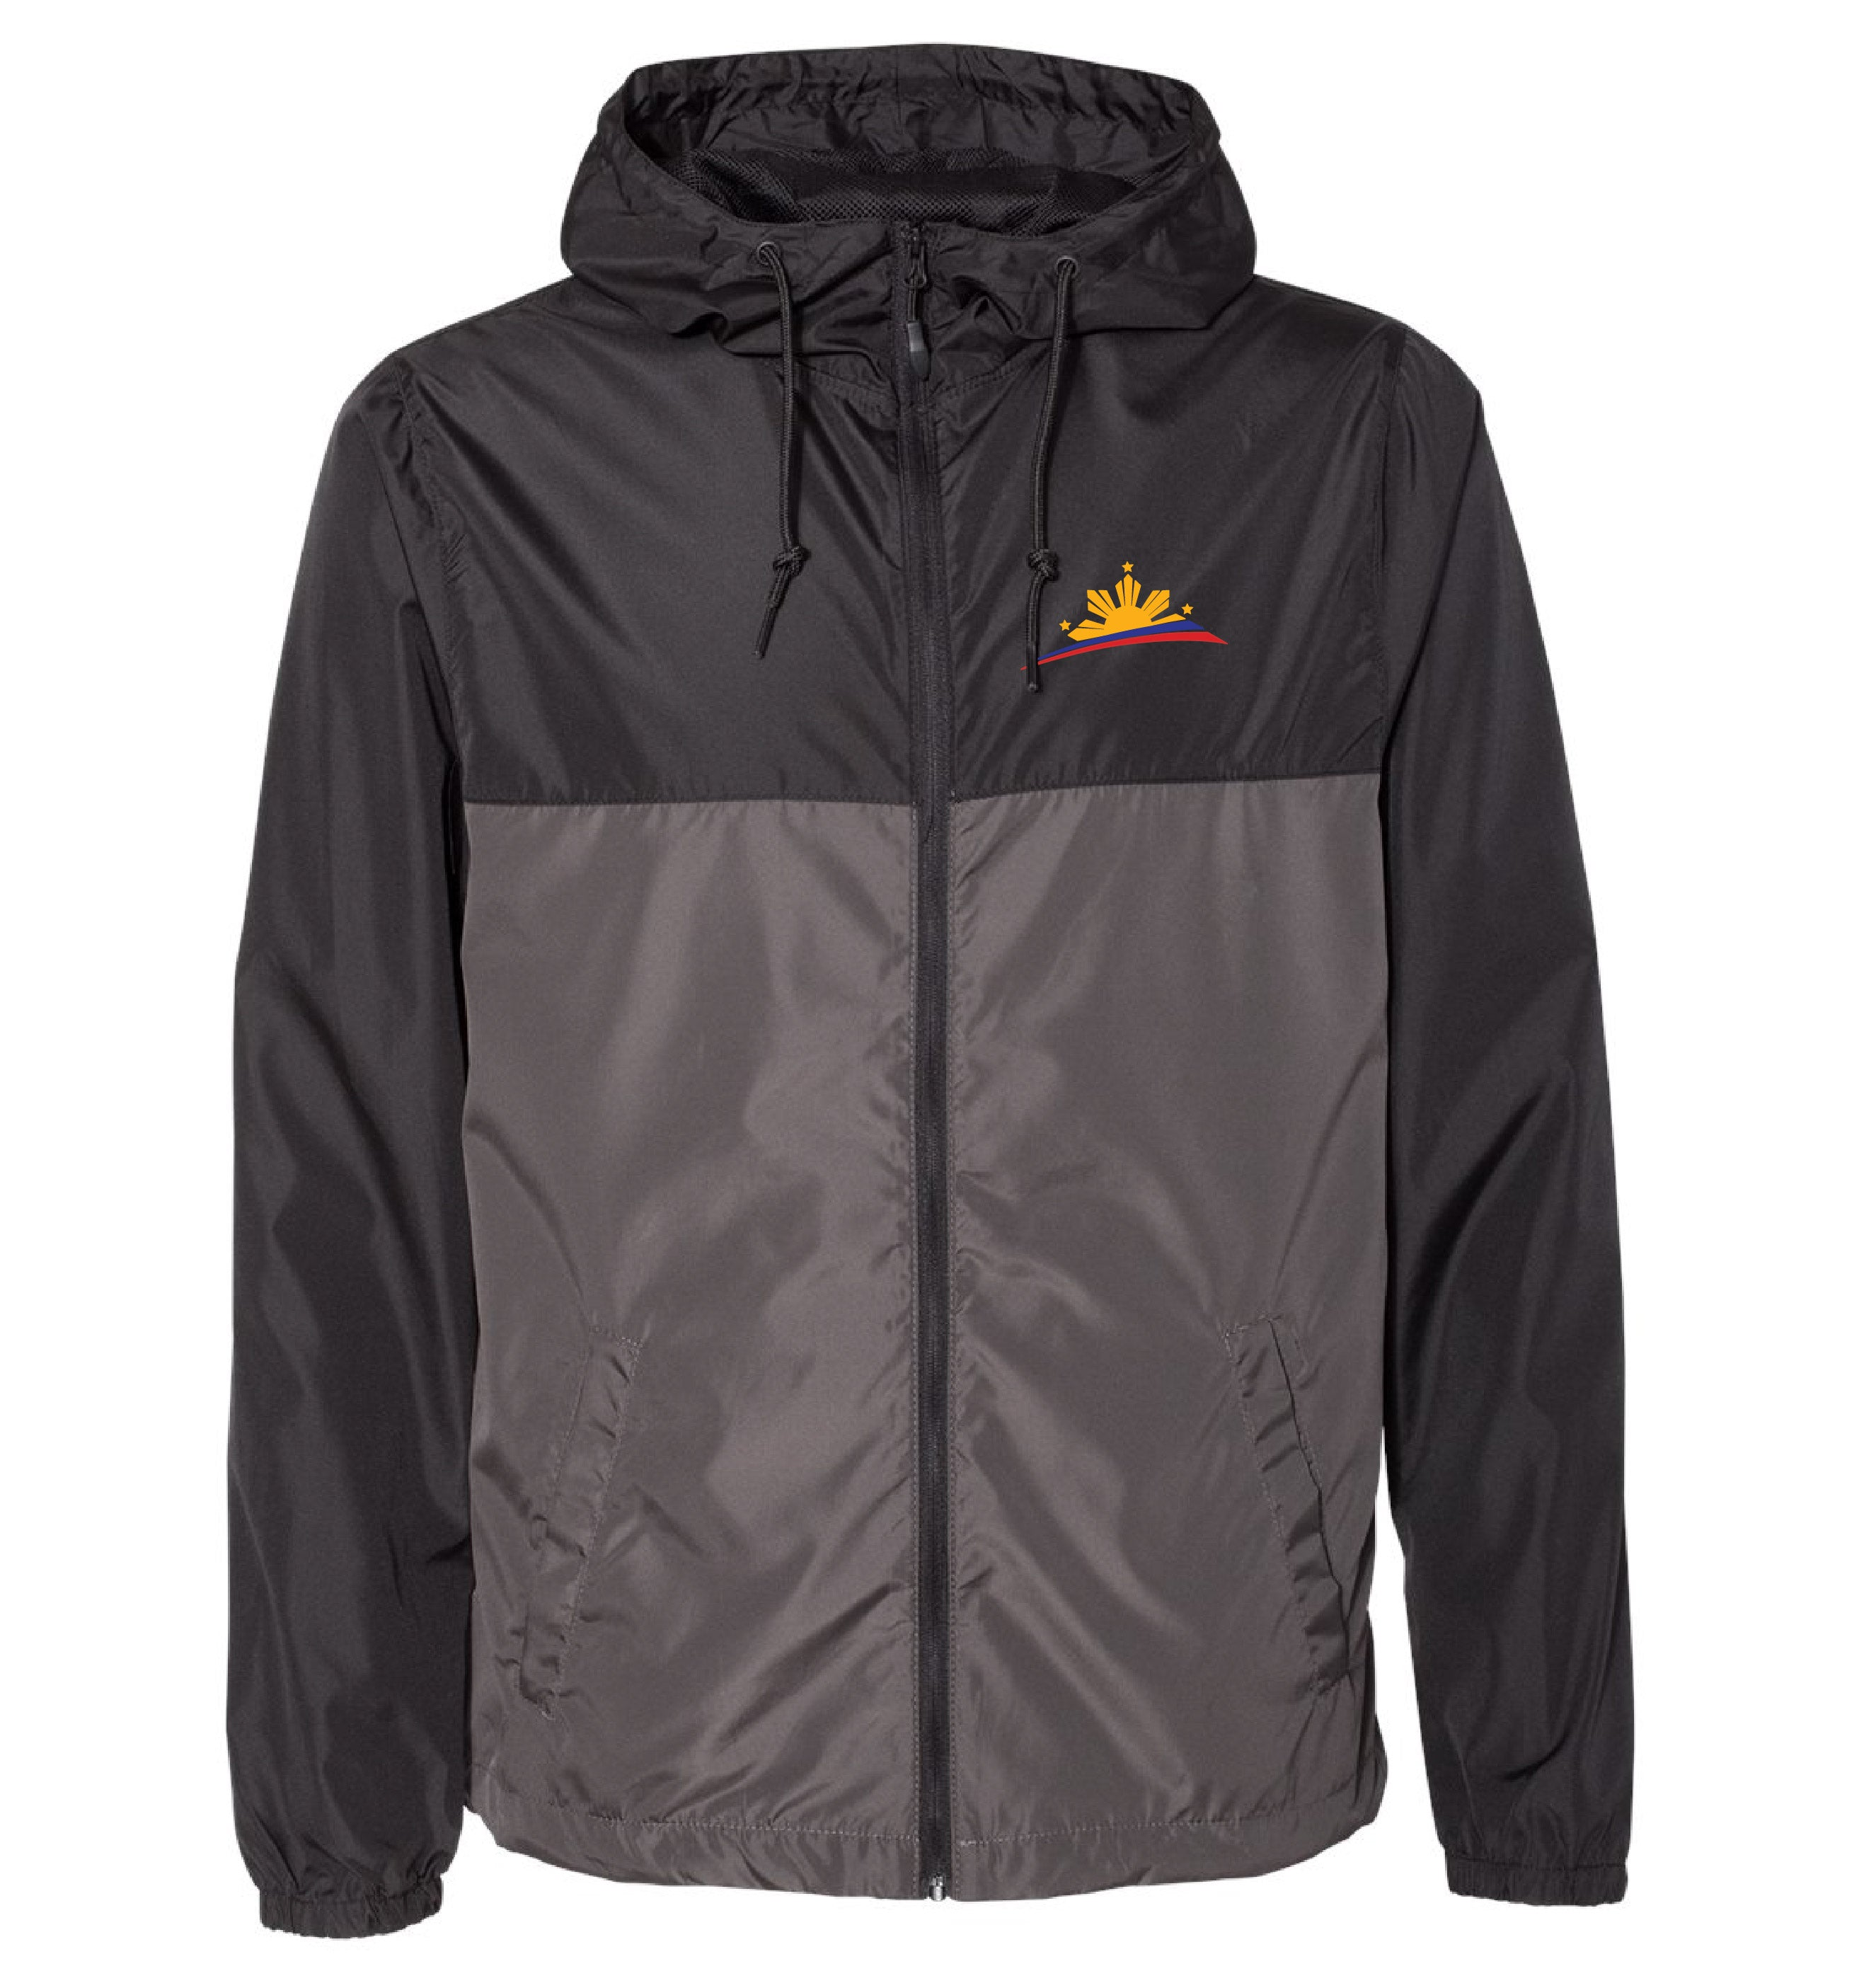 Filipino Lightweight Windbreaker Zip Jacket - Men